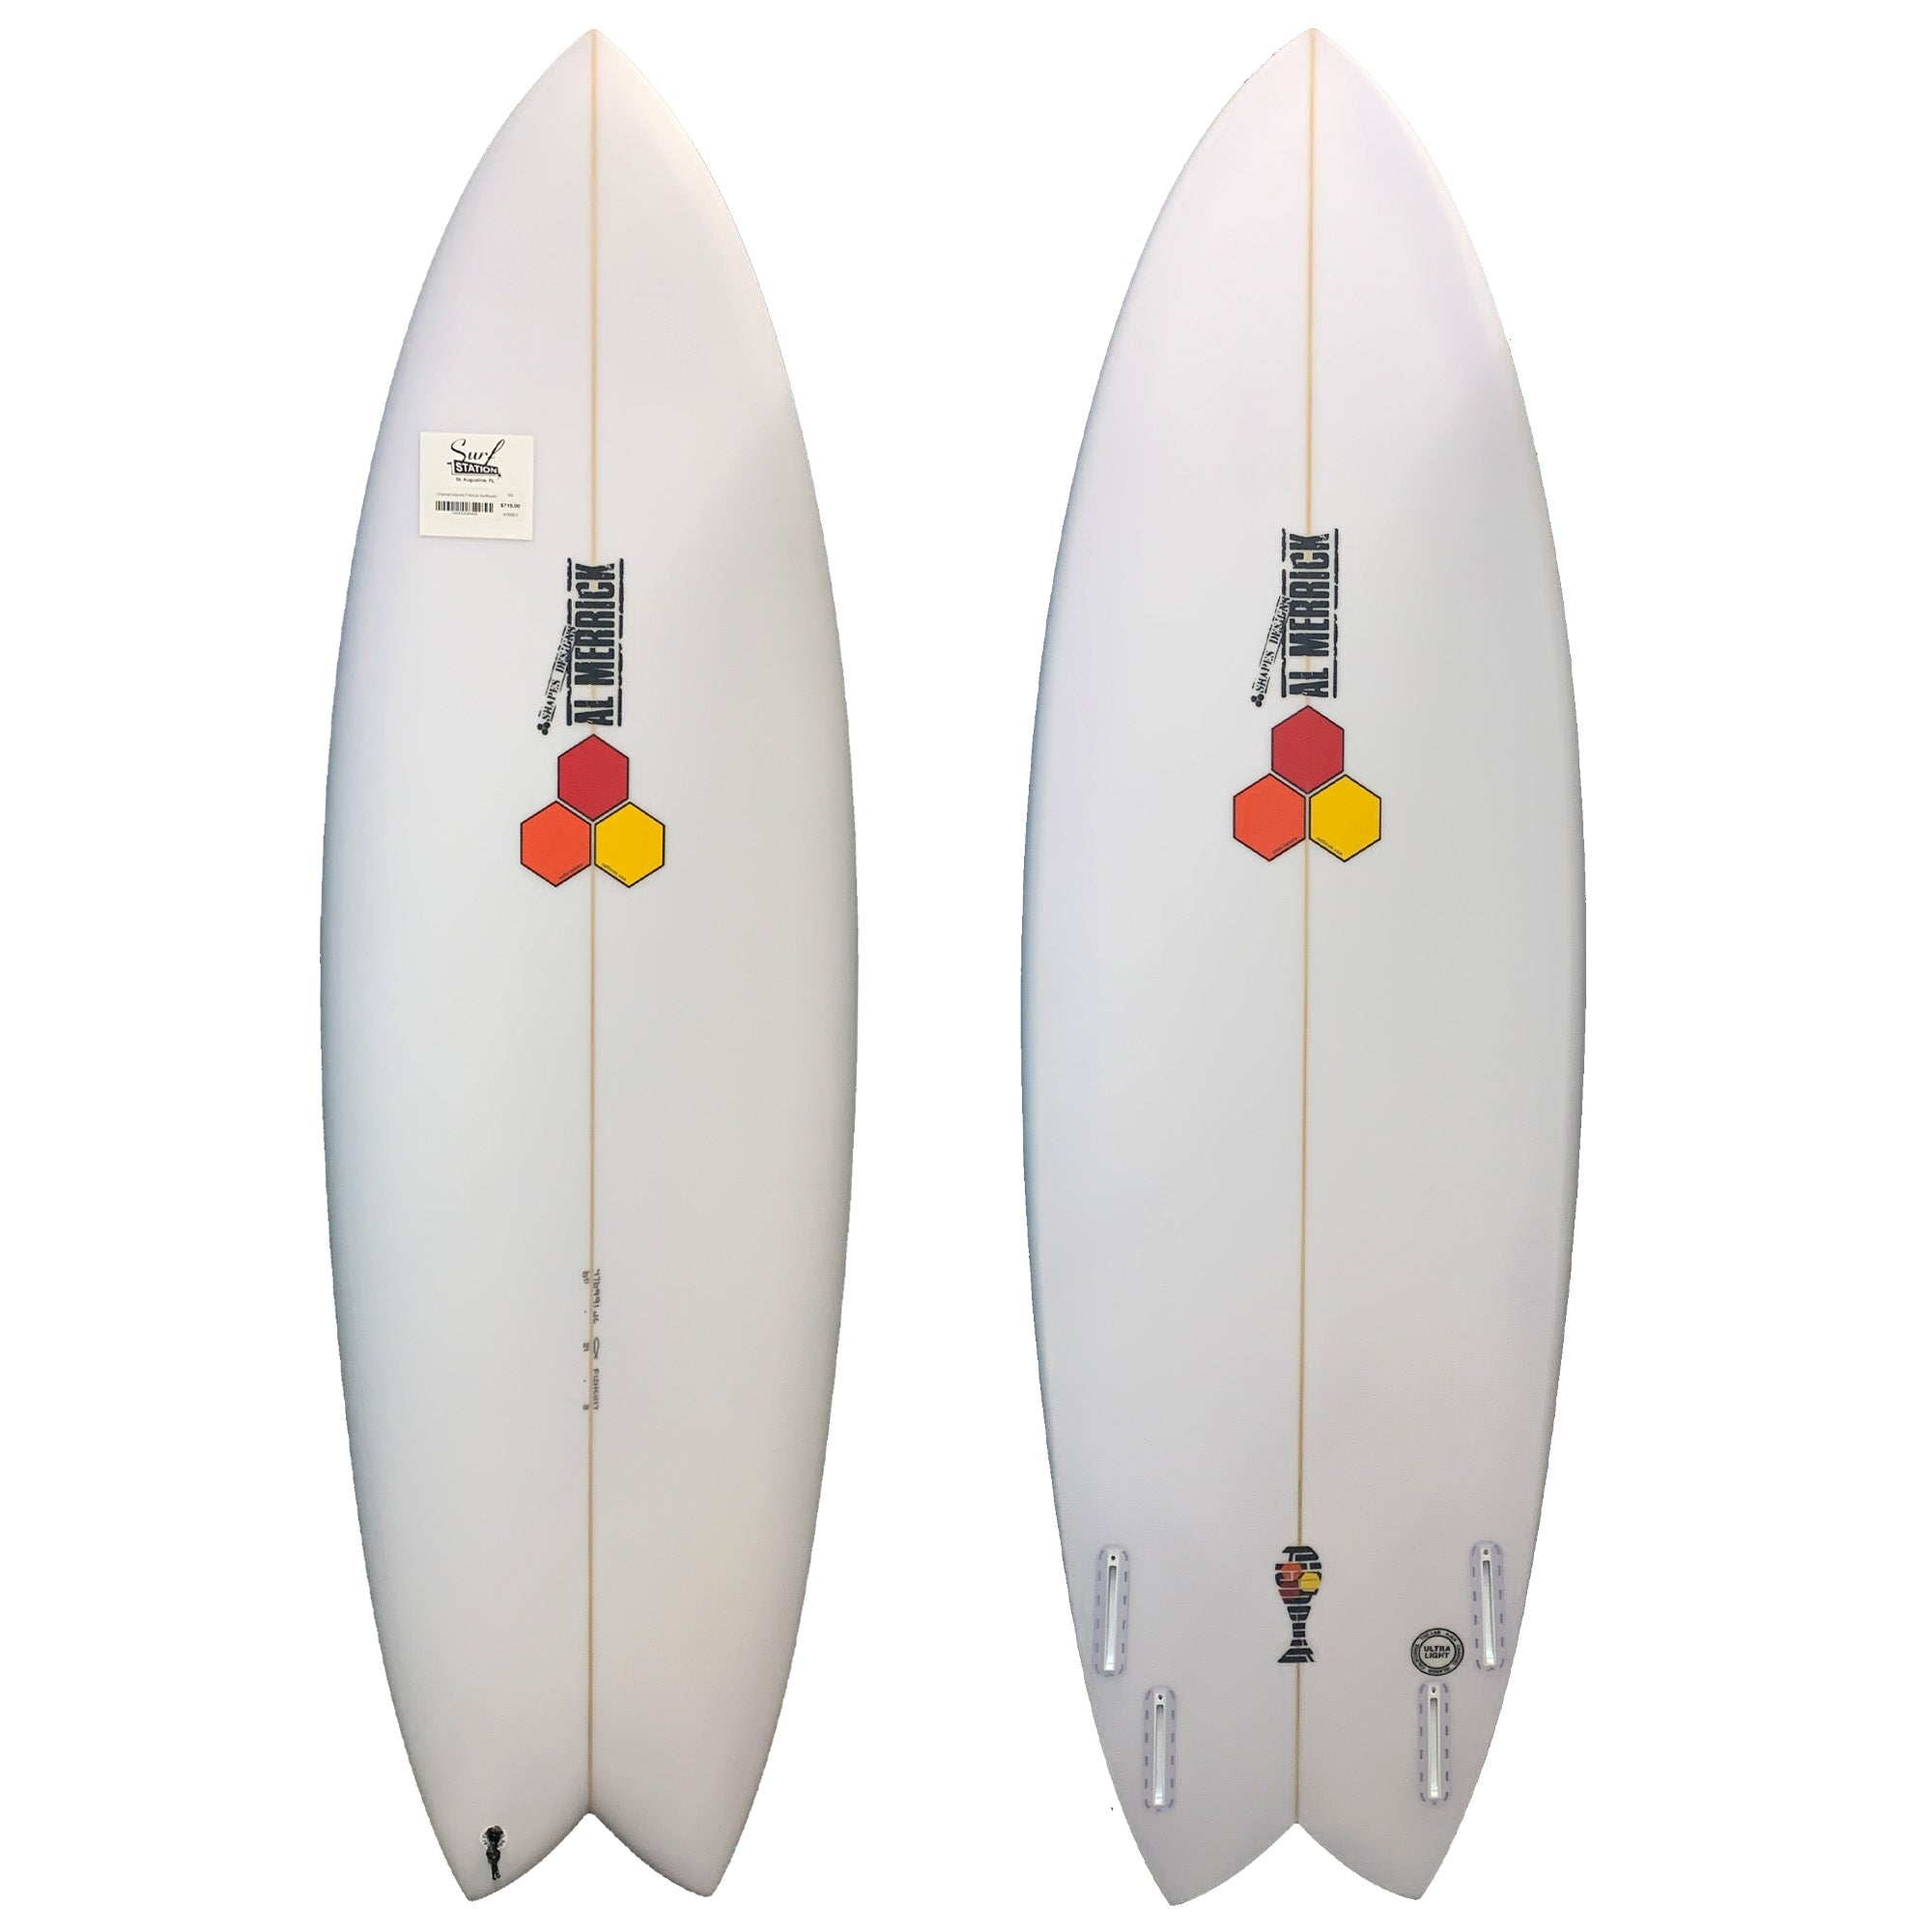 Channel Islands Fishcuit Surfboard - Futures